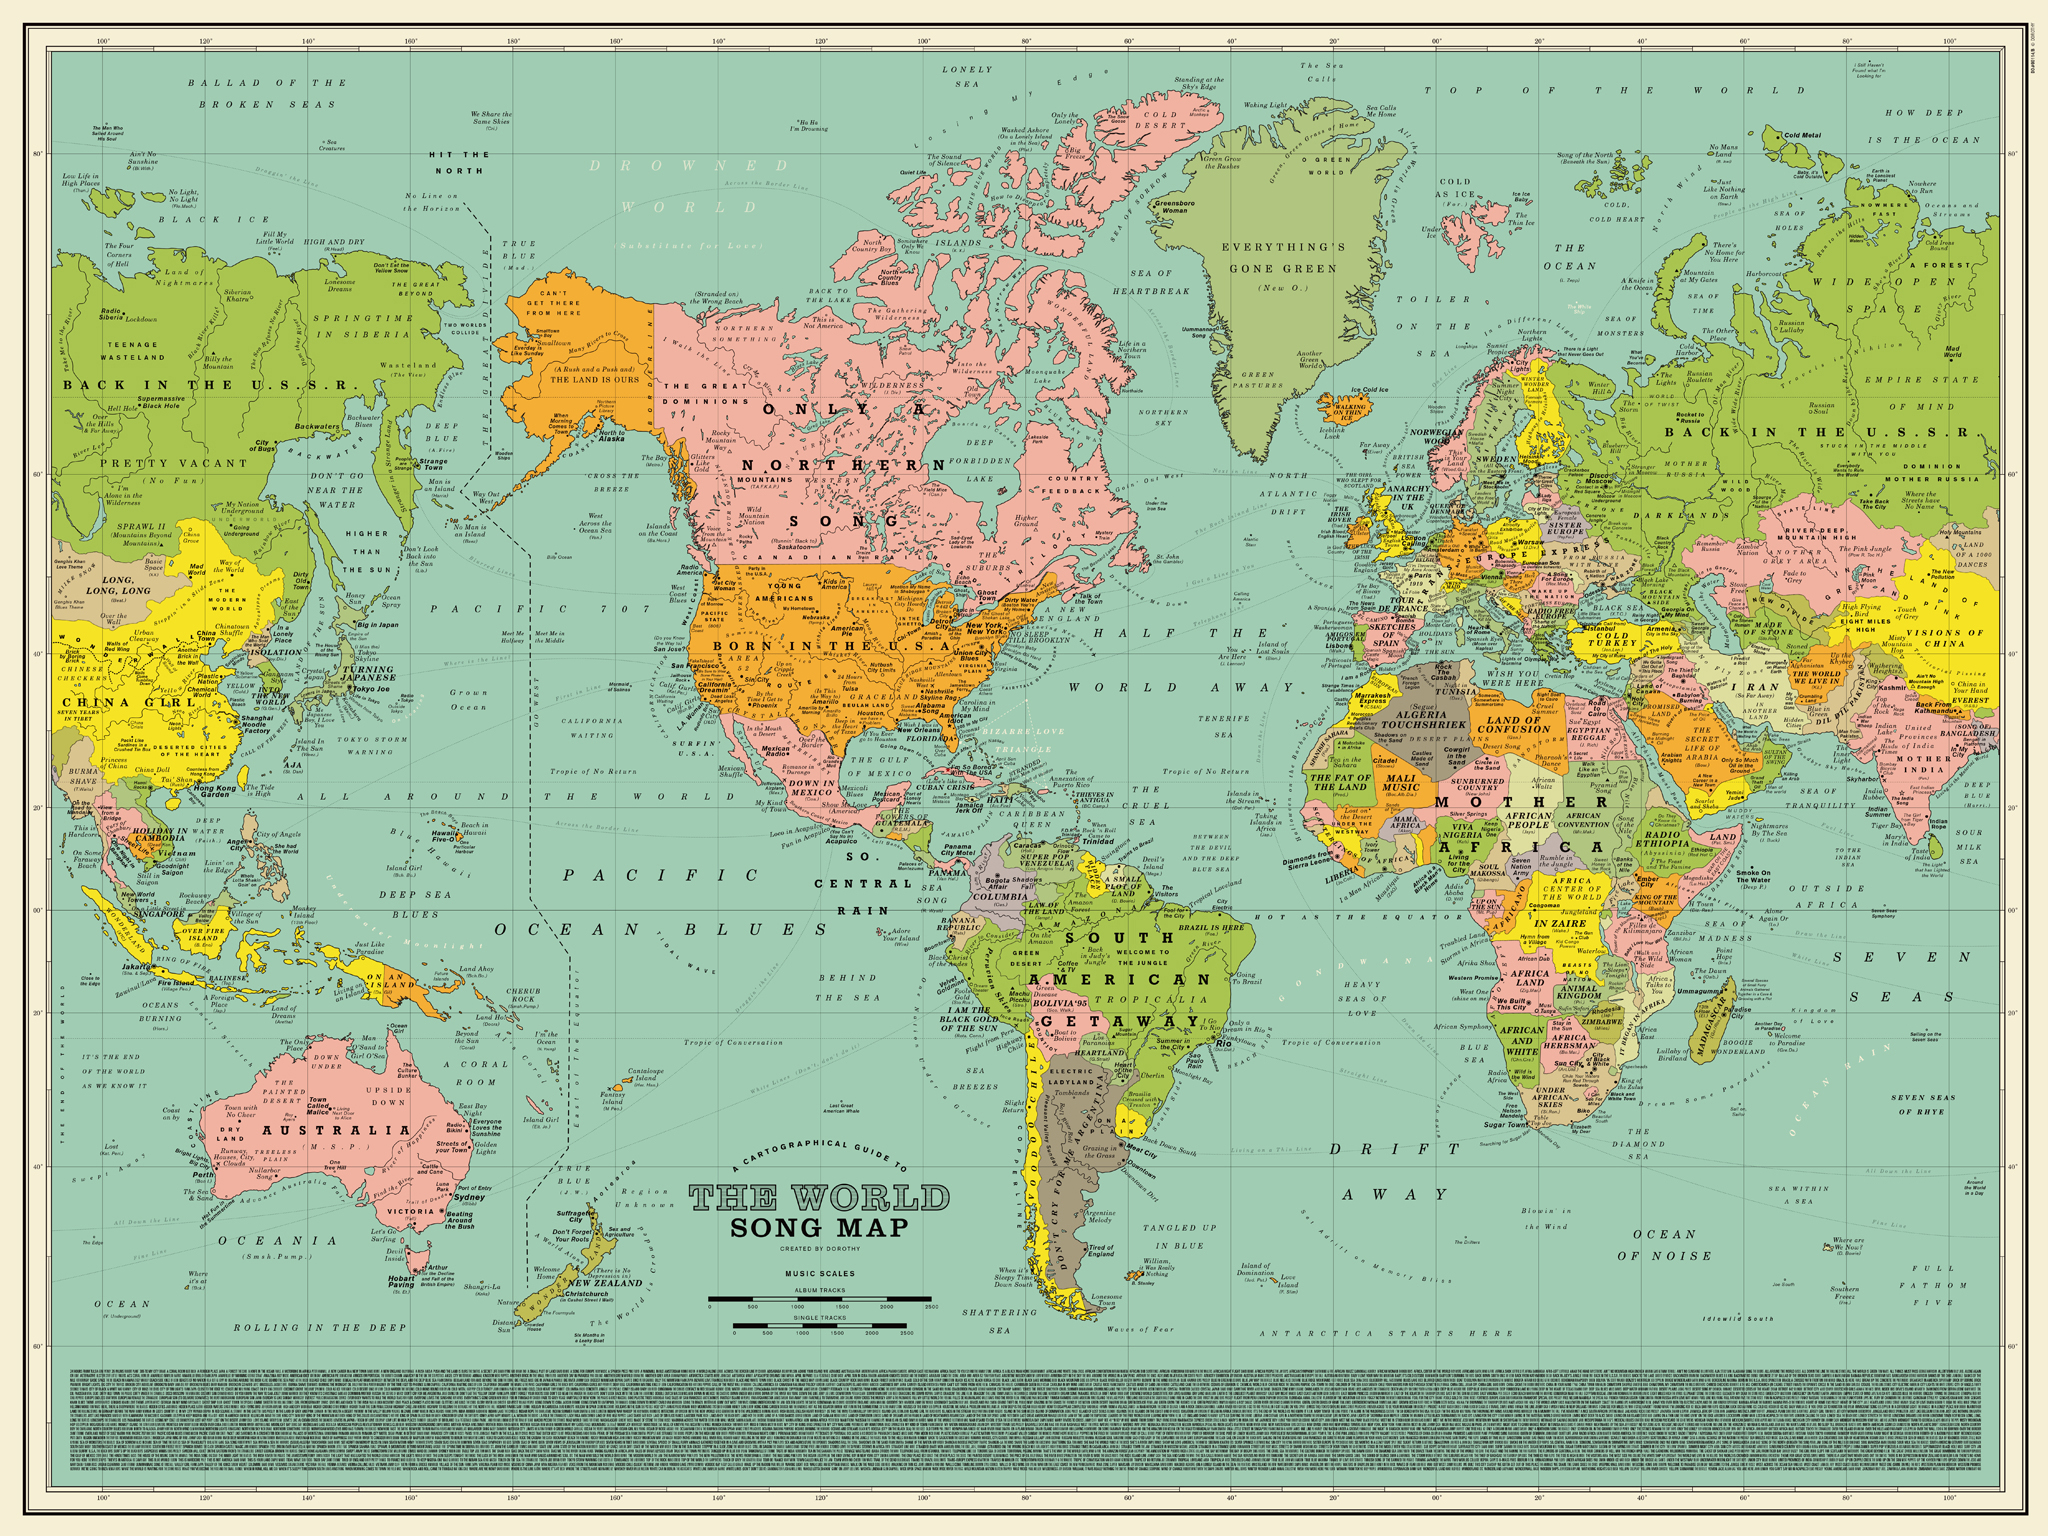 World Song Map A Detailed Poster That Imagines The World Map Made - World mapp